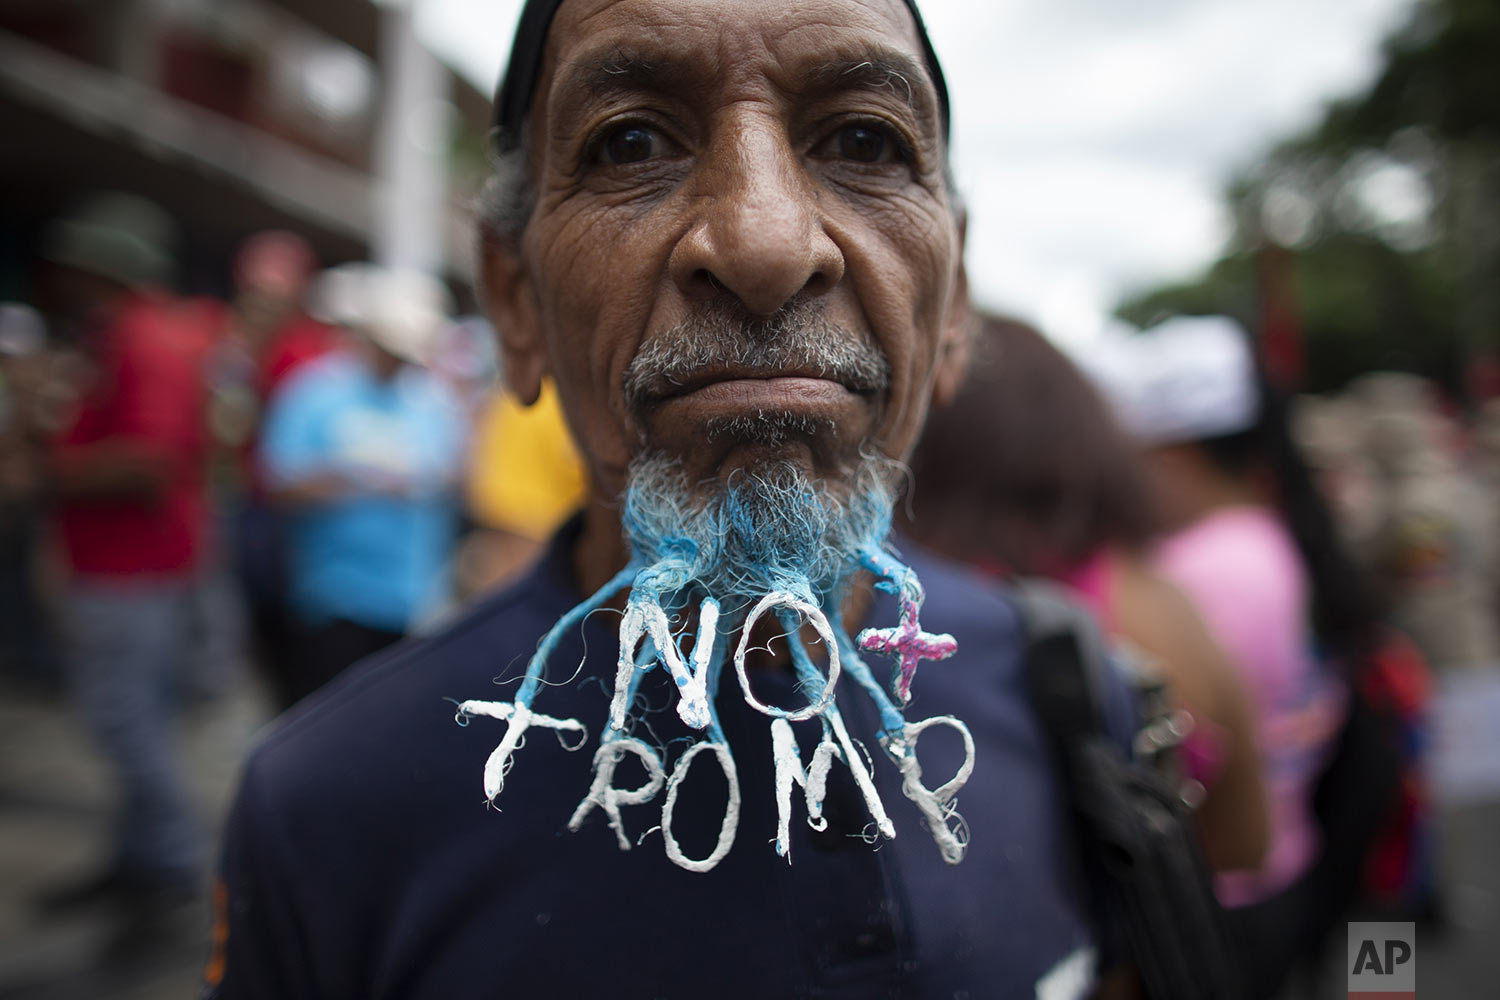 "A supporter of President Nicolas Maduro dons a beard woven into a message that reads in Spanish; ""No more Trump"" during an anti-imperialist rally in Caracas, Venezuela, Saturday, Aug. 31, 2019. U.S.-based Mastercard suspended its services to two Venezuelan banks under sanctions aimed at forcing Maduro from power in the crisis-stricken South American nation. (AP Photo/Ariana Cubillos)"